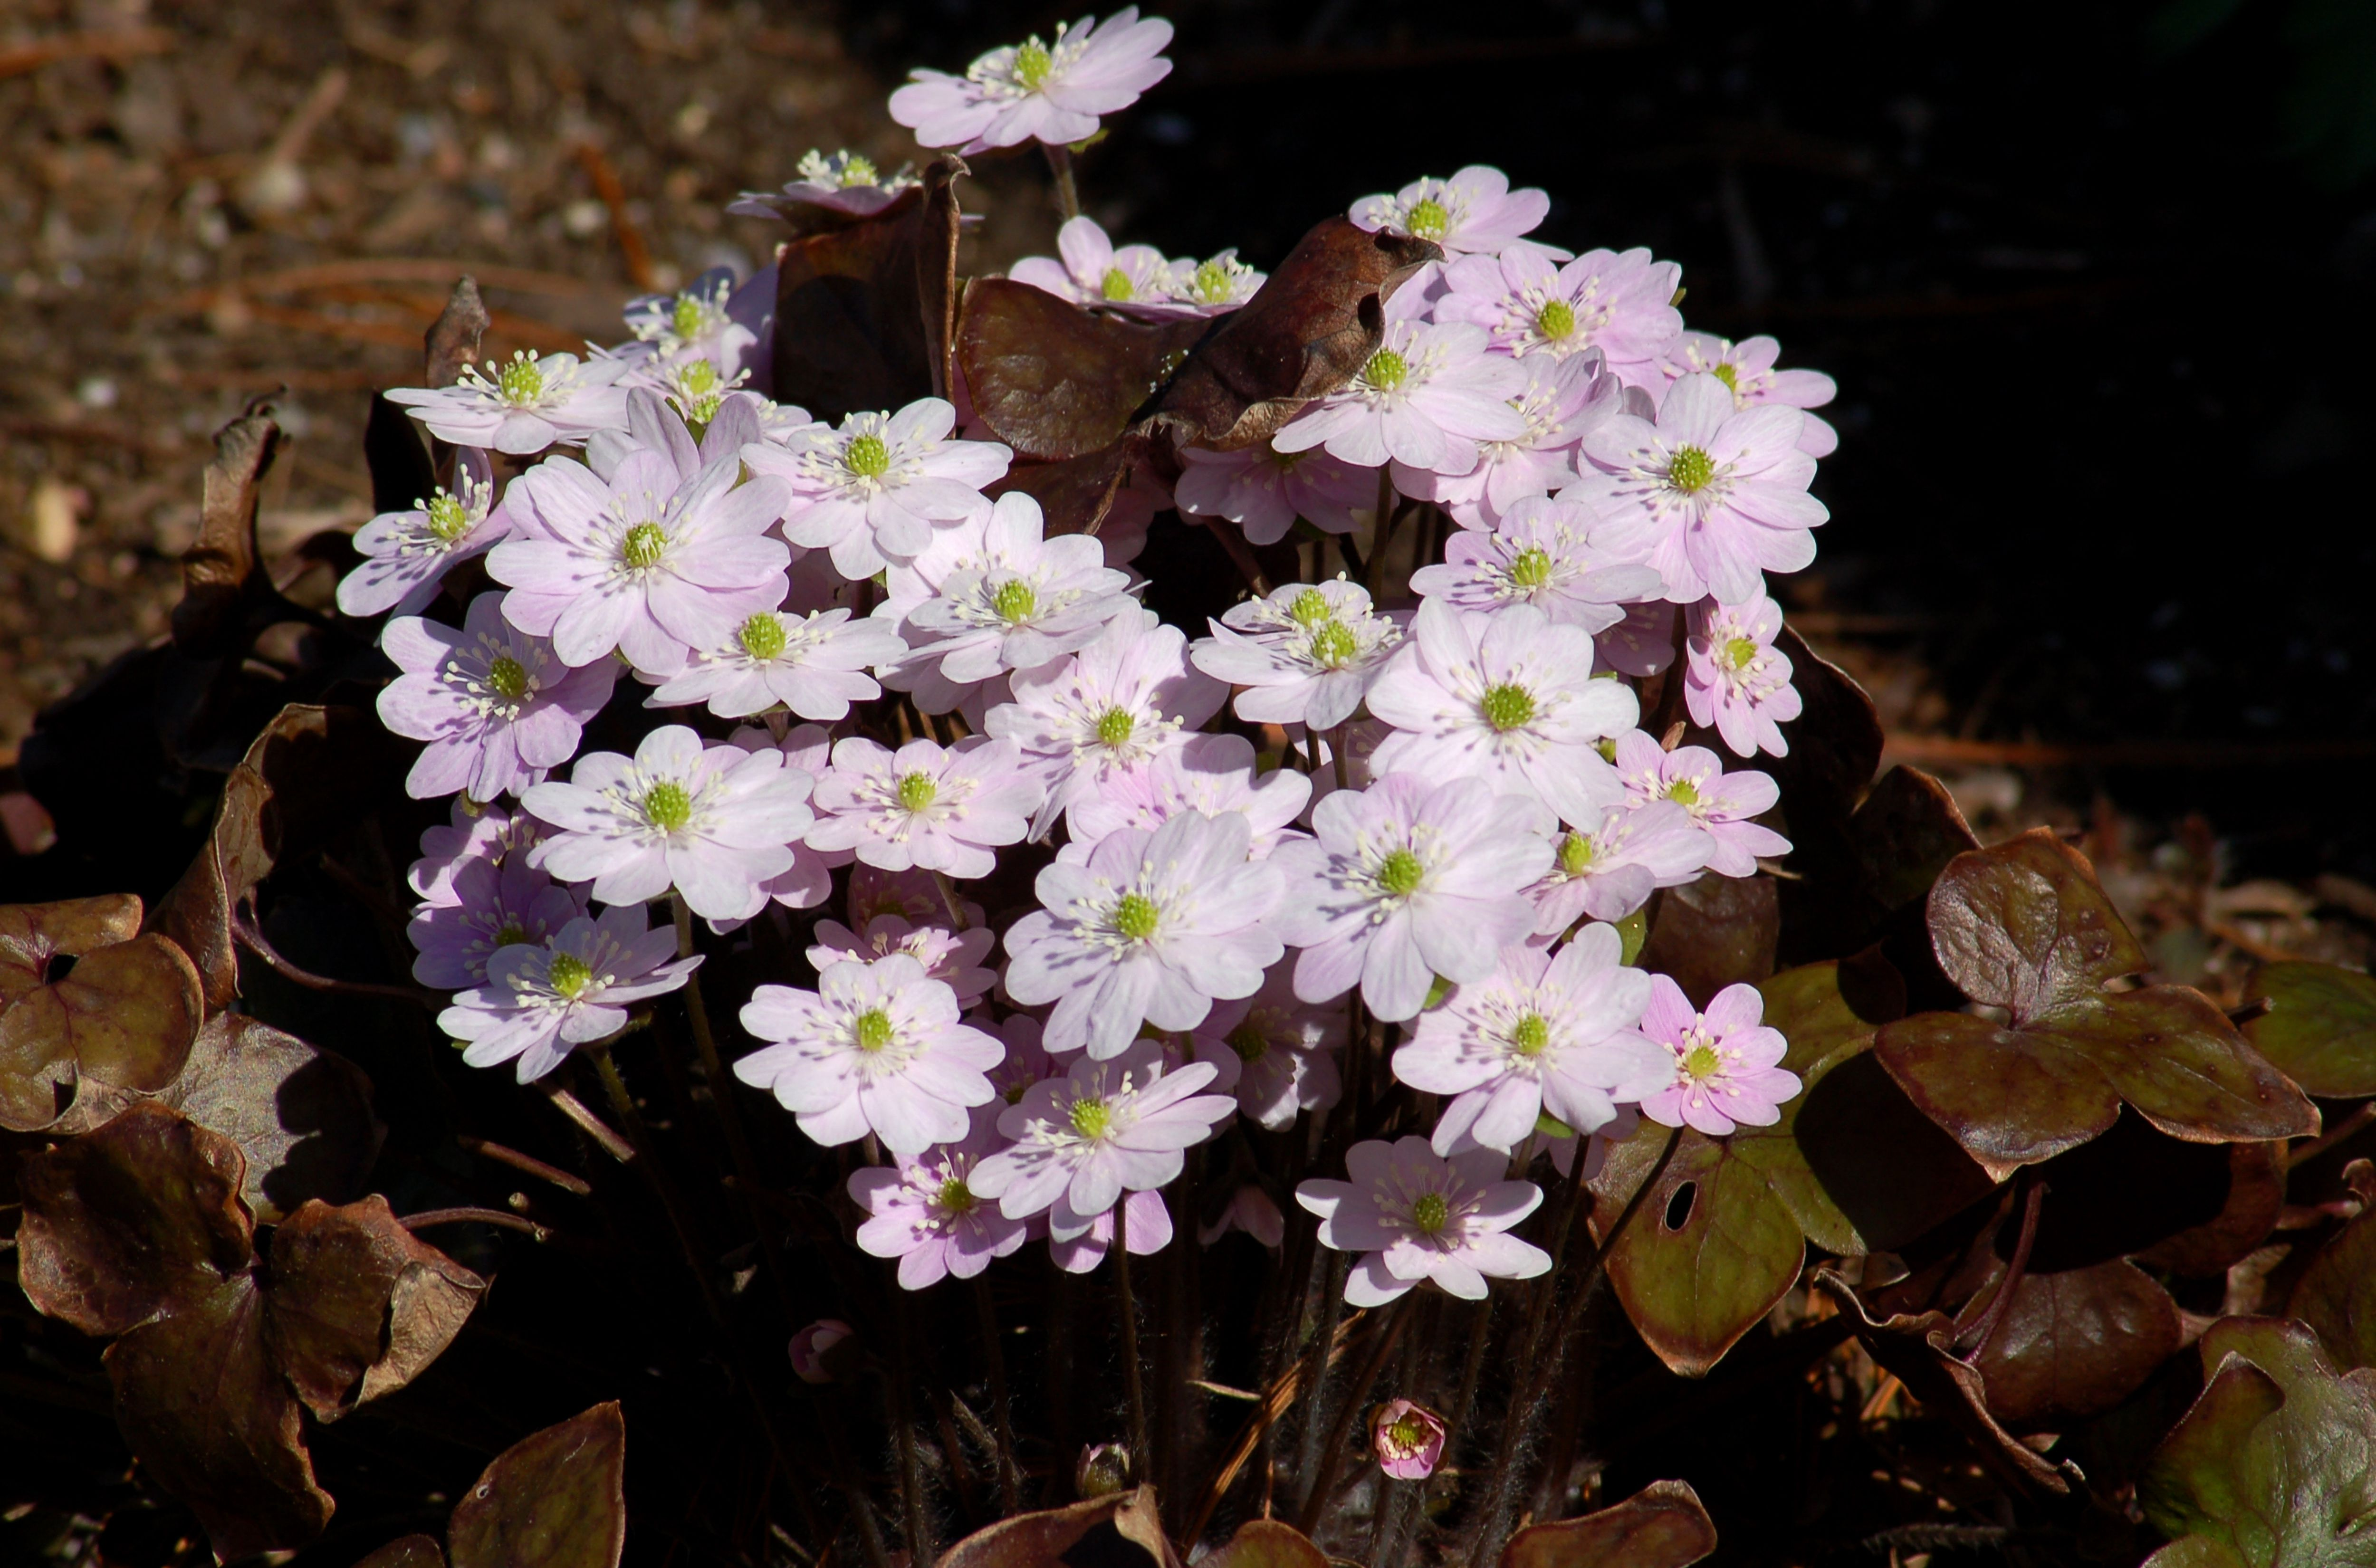 Hepatica flowers in pink